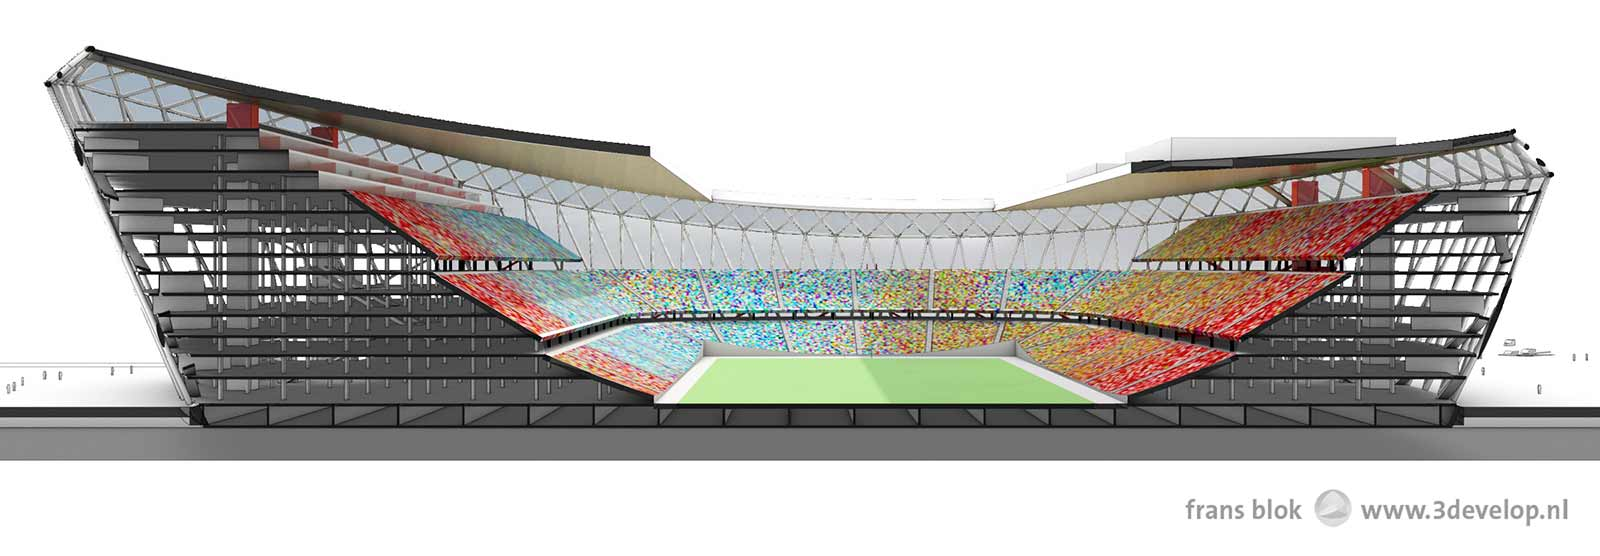 Longitudinal section of the proposed new stadium for Feyenoord, The Barge